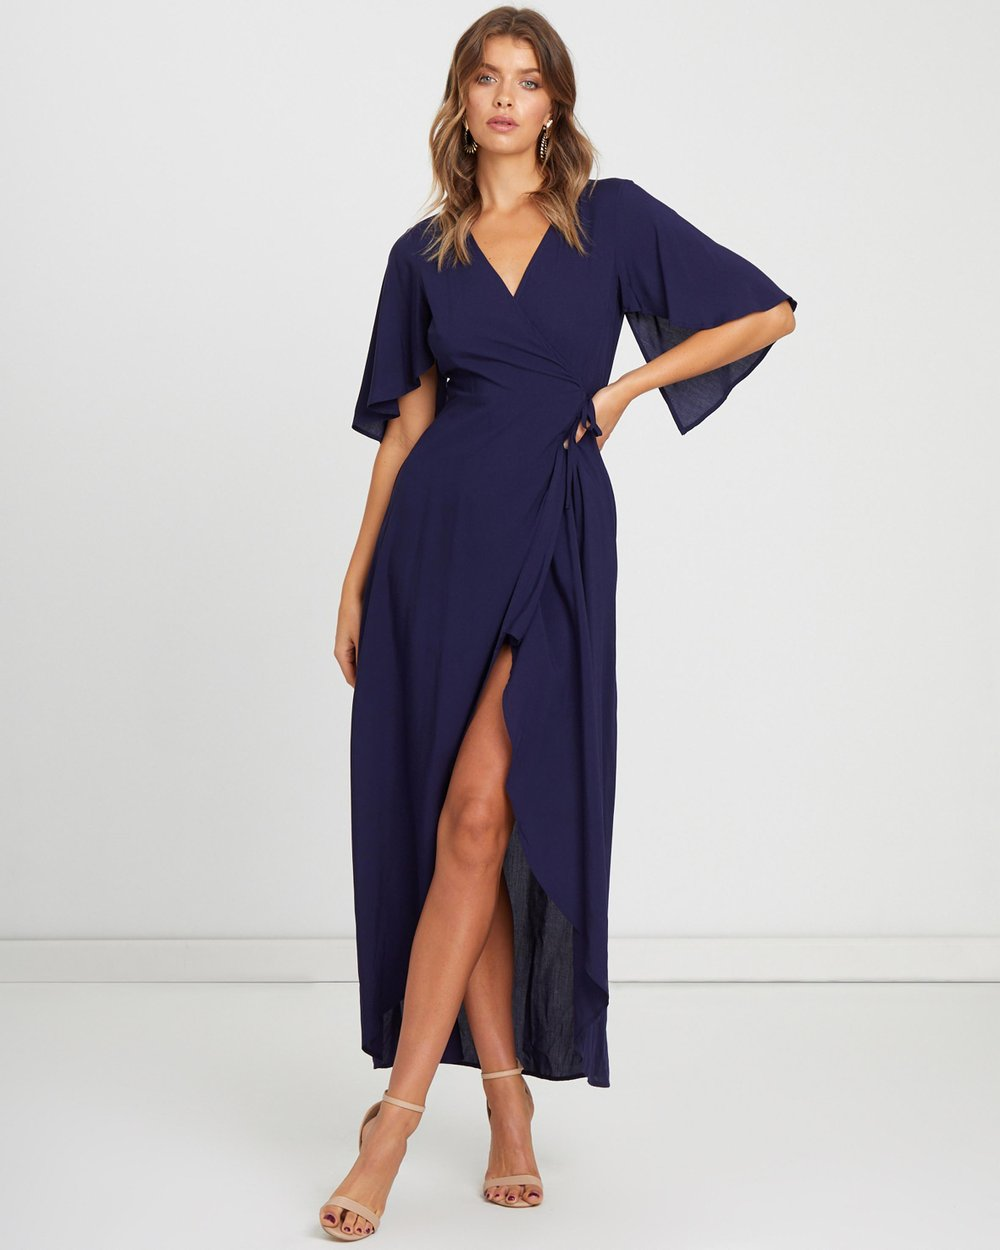 8d878b74e321 ICONIC EXCLUSIVE - Lina Wrap Maxi Dress by Atmos Here Online